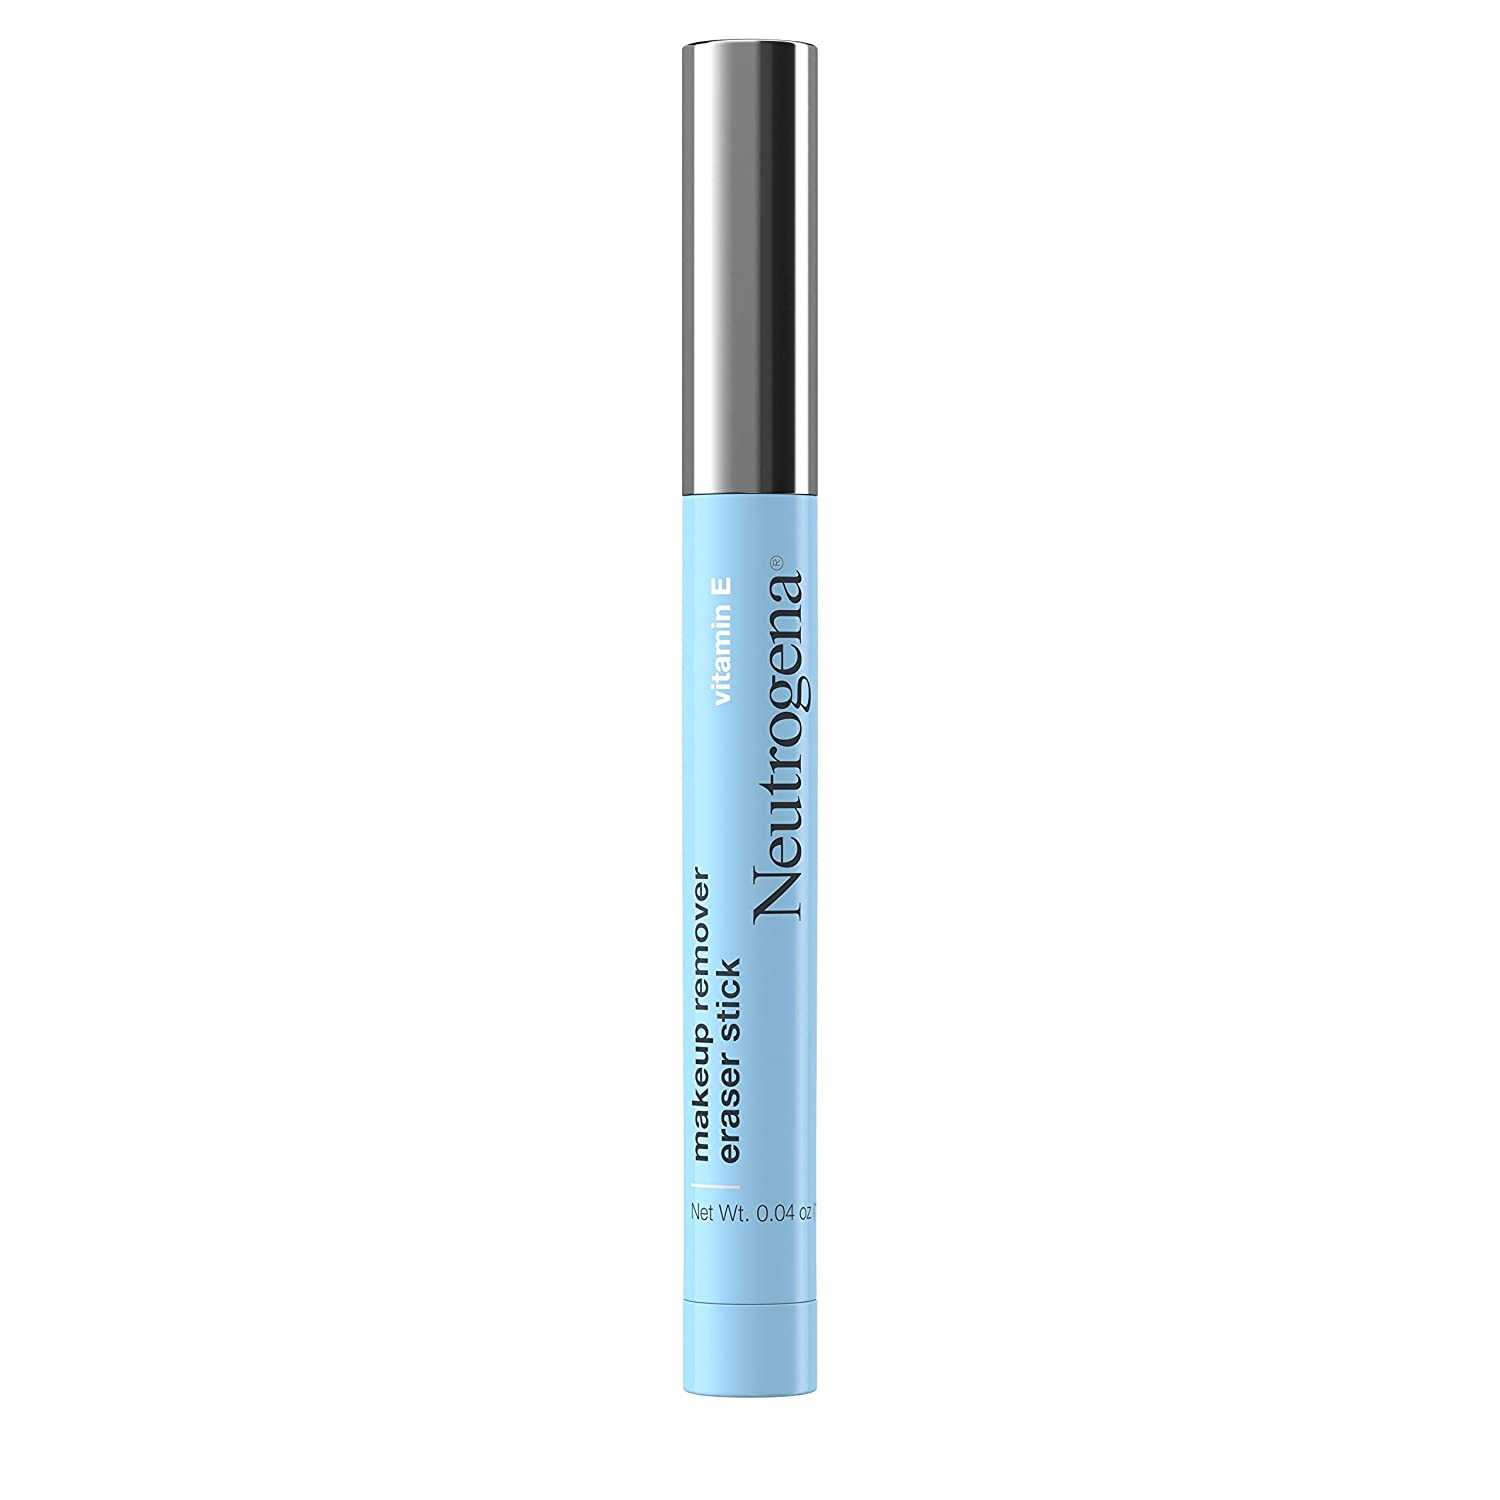 Neutrogena Makeup Remover Eraser Stick with Vitamin E, Easy-to Use & Travel-Friendly Makeup Removing Gel Pen for On-the-Go Touch-Ups of Stray or Smudged Eyeliner, Lipstick, & More, 0.04 oz